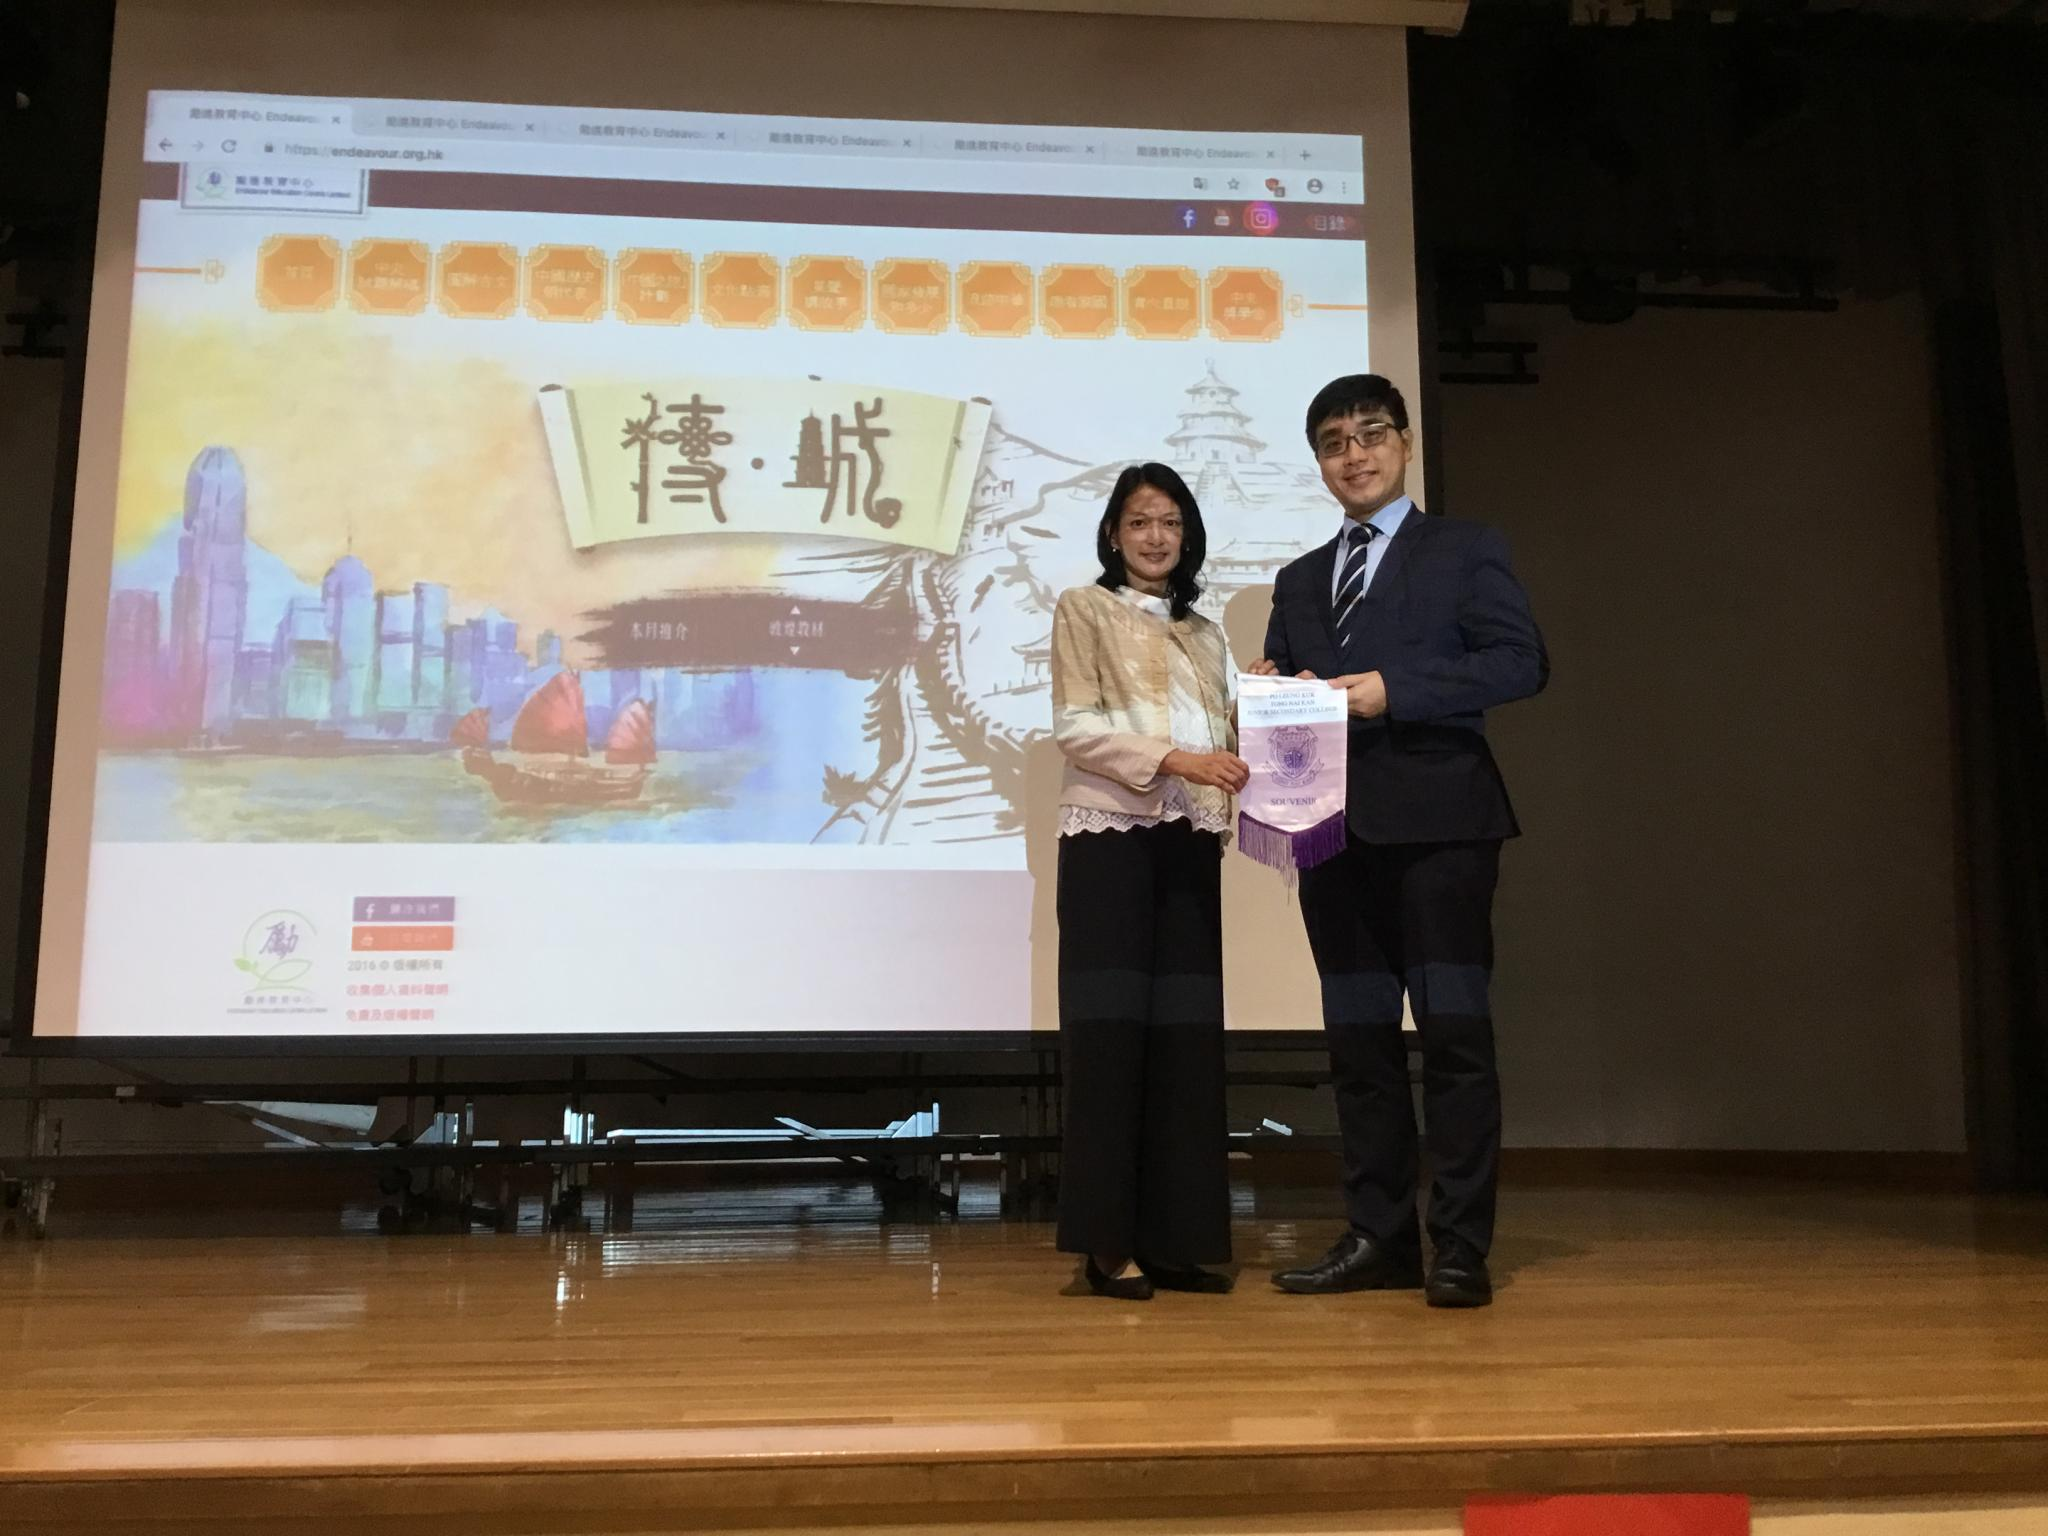 The Vice-Principal Ms. Siu gave a Pennant to the guest to express our gratitude for his coming.